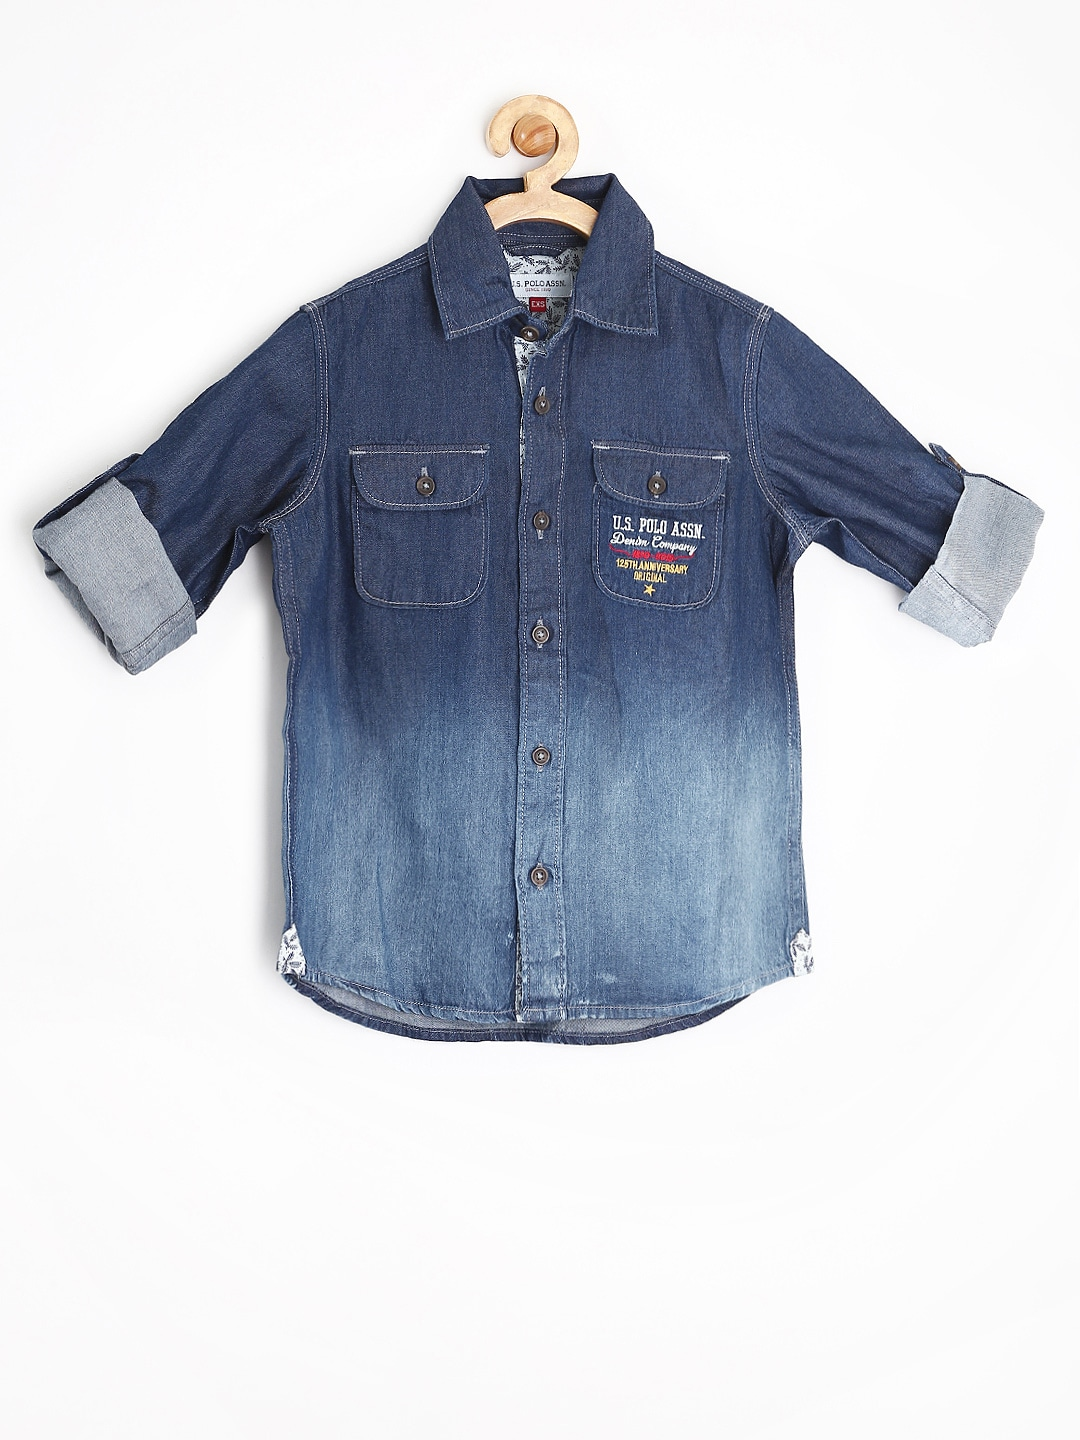 U.S. Polo Assn. Kids Boys Blue Denim Shirt